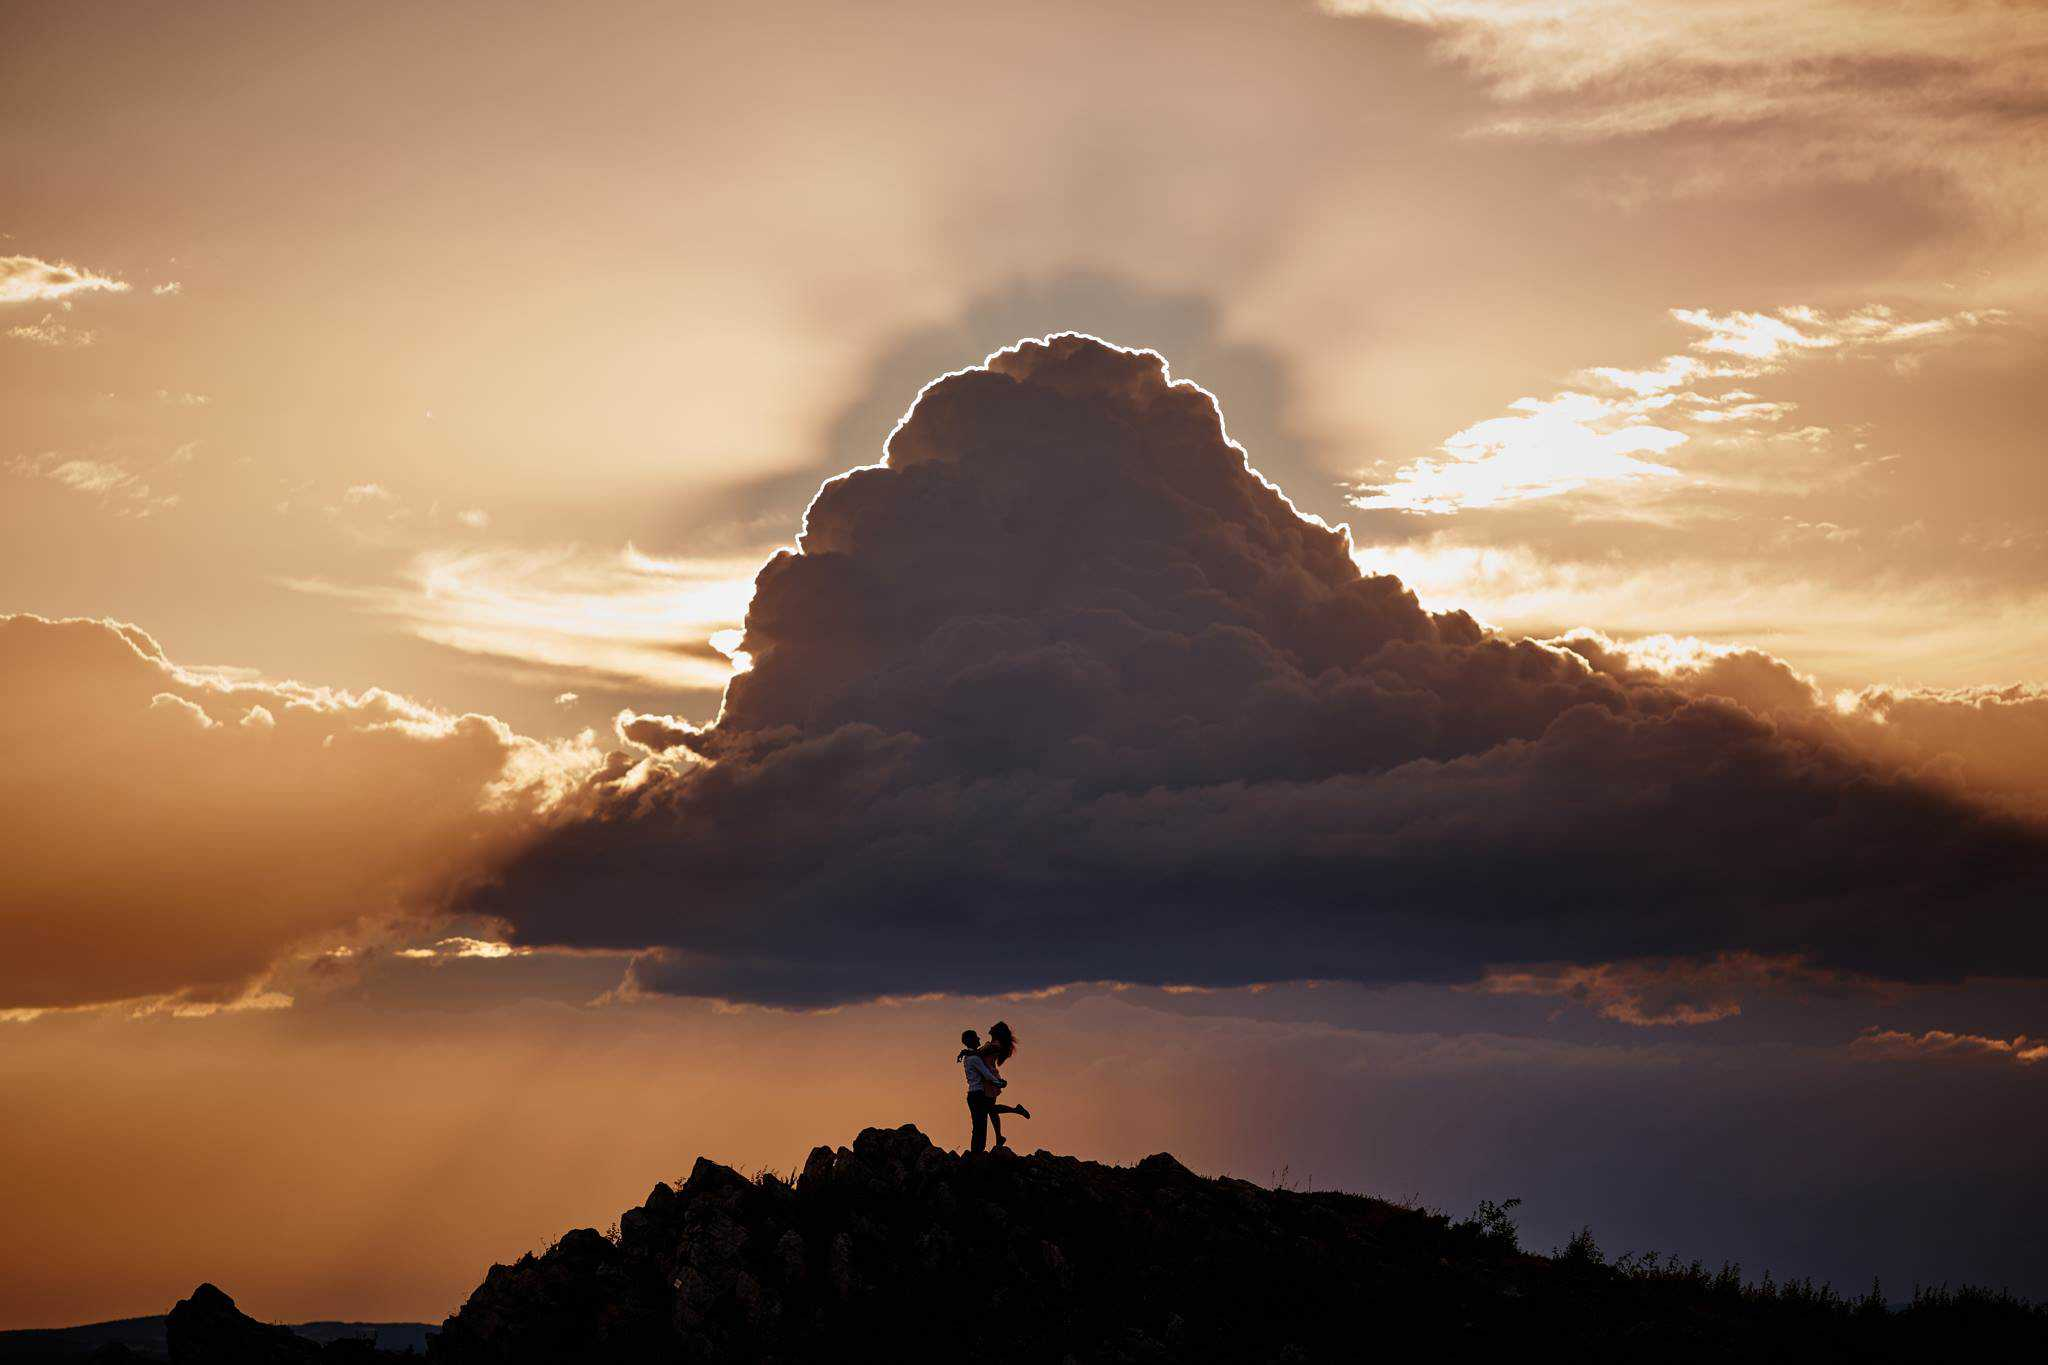 A man picking up his wife in front of a large cloud